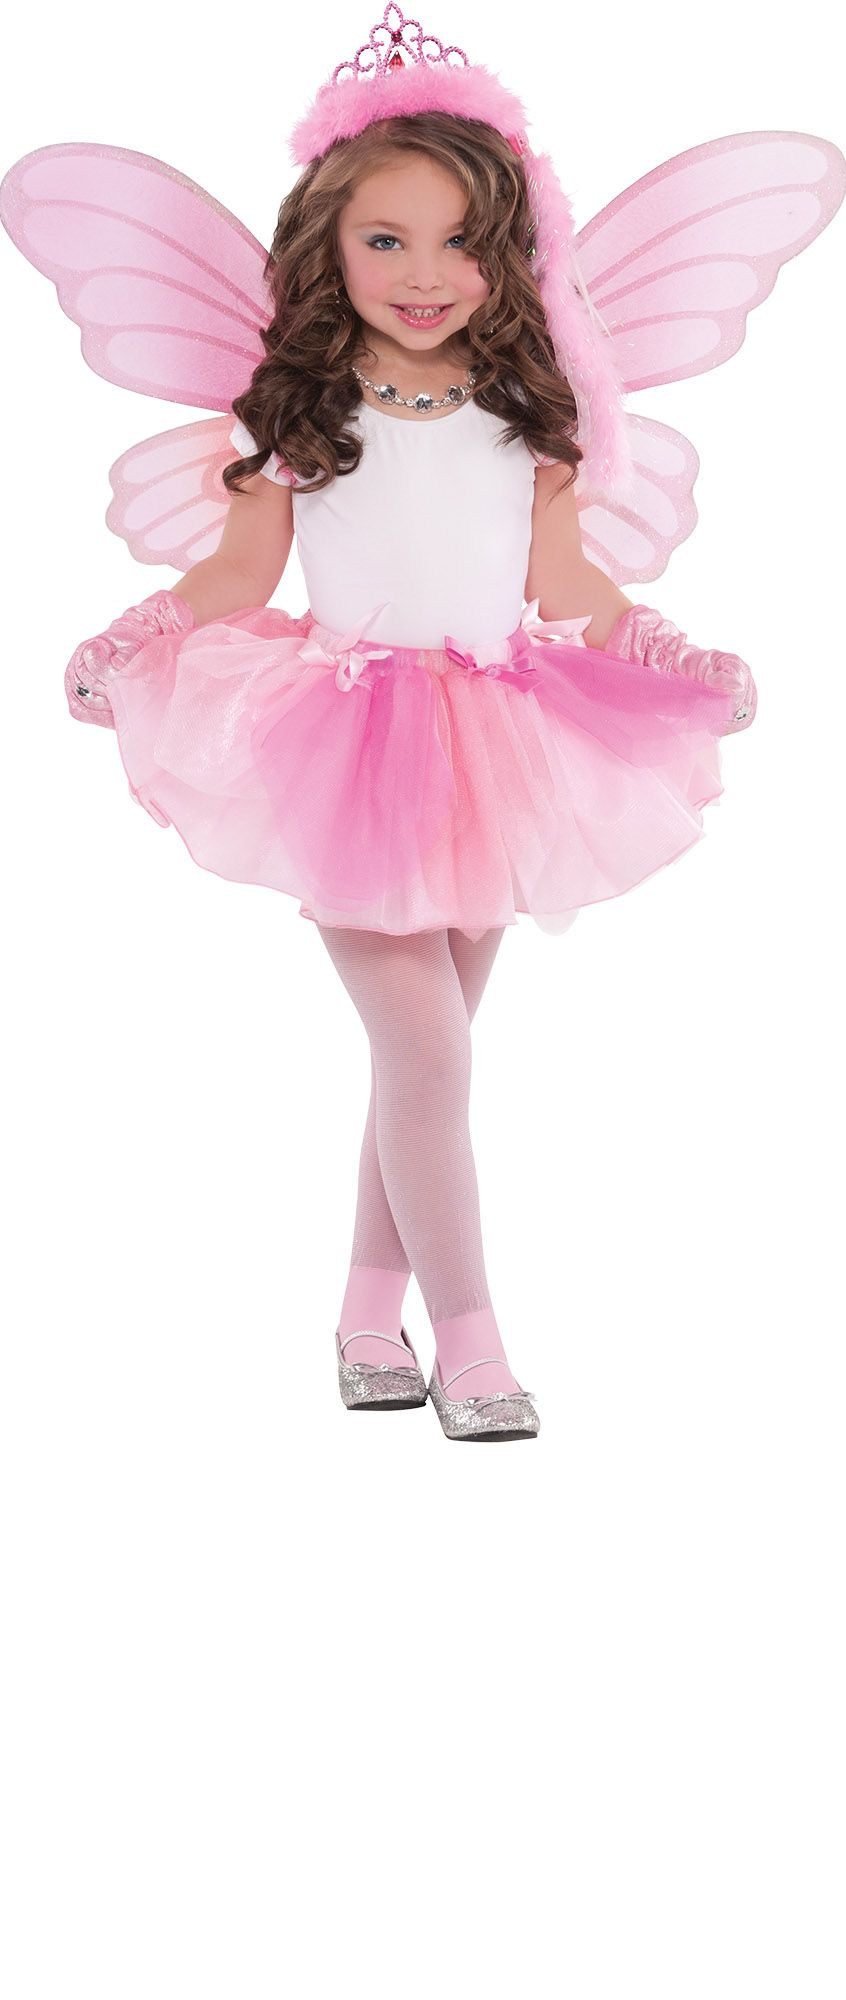 Create Your Own Girls\' Princess Fairy Costume Accessories | Party City